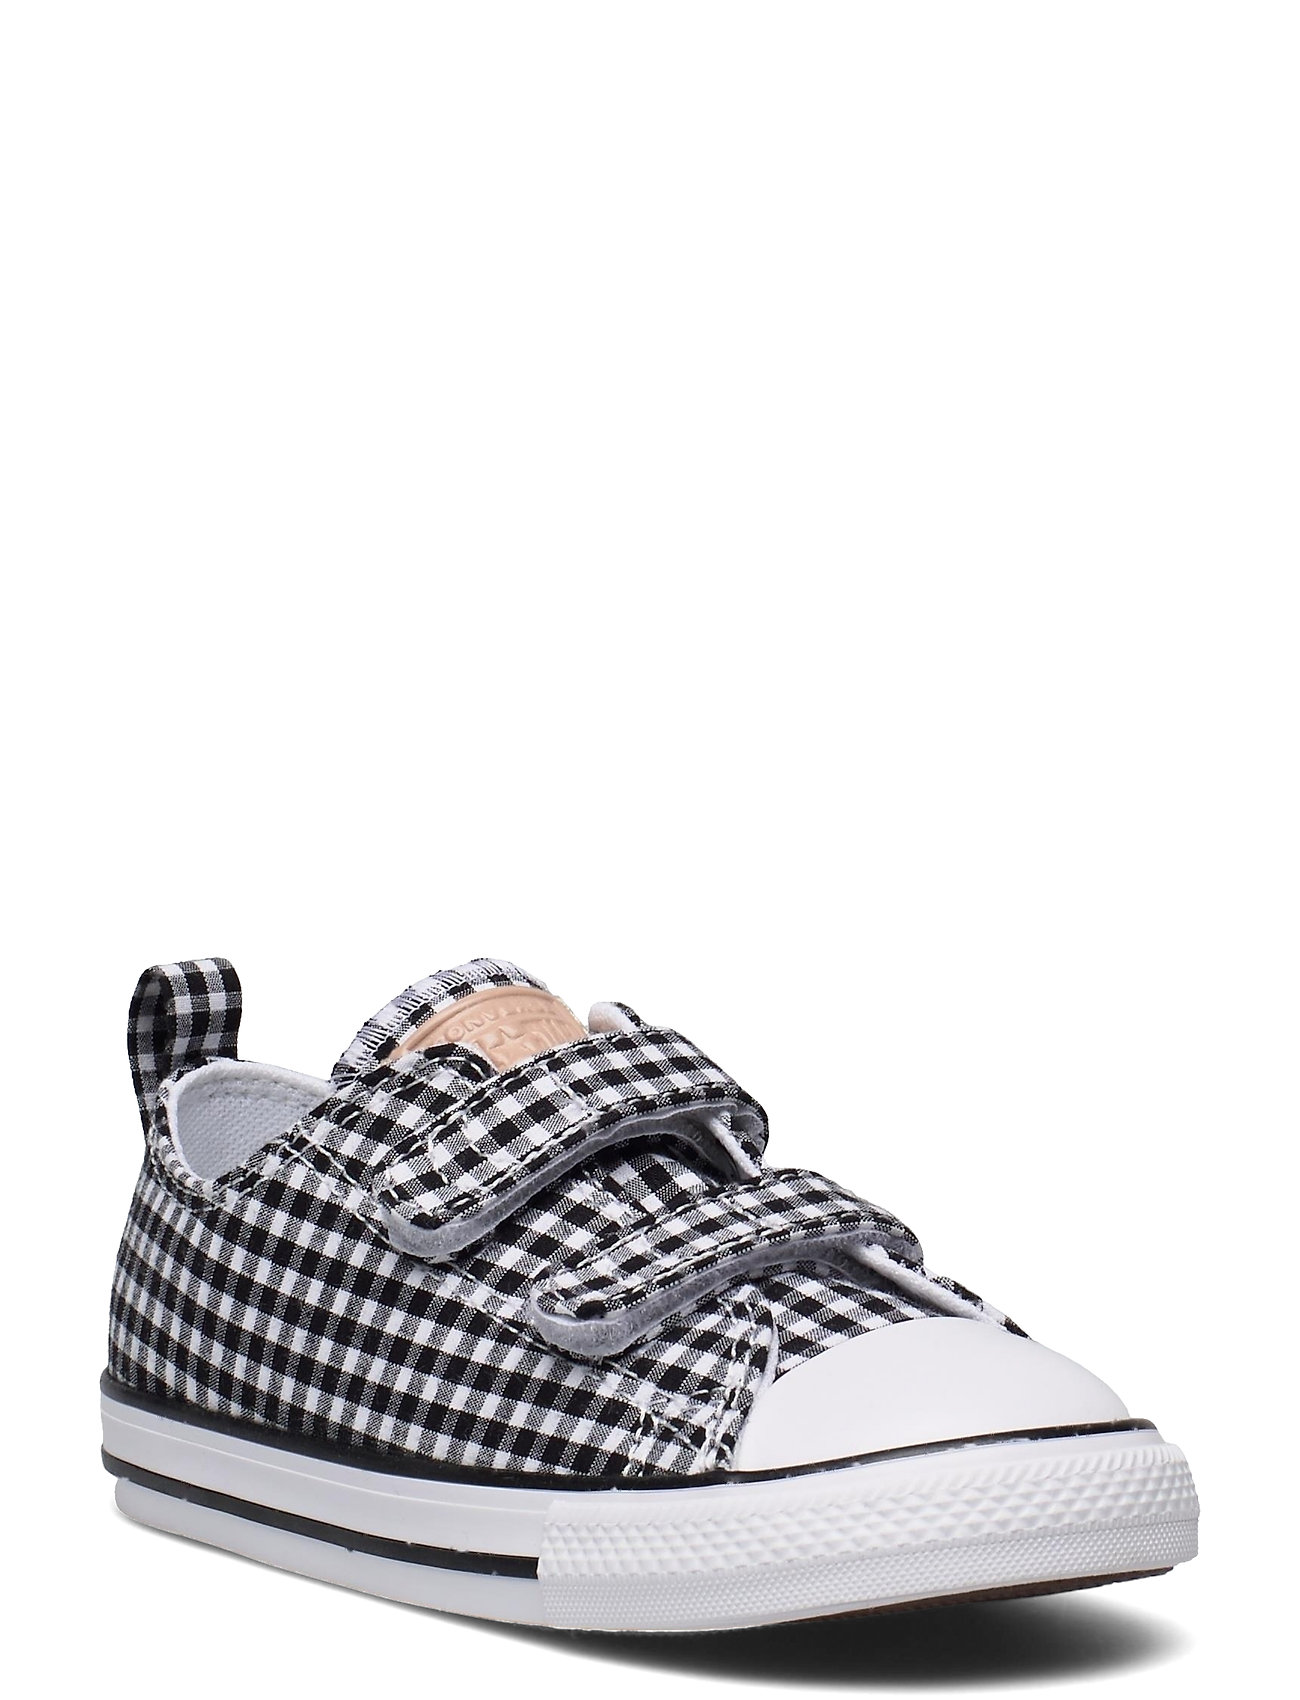 Image of Ctas 2v Ox Black/White/Black Low-top Sneakers Sort Converse (3533871993)